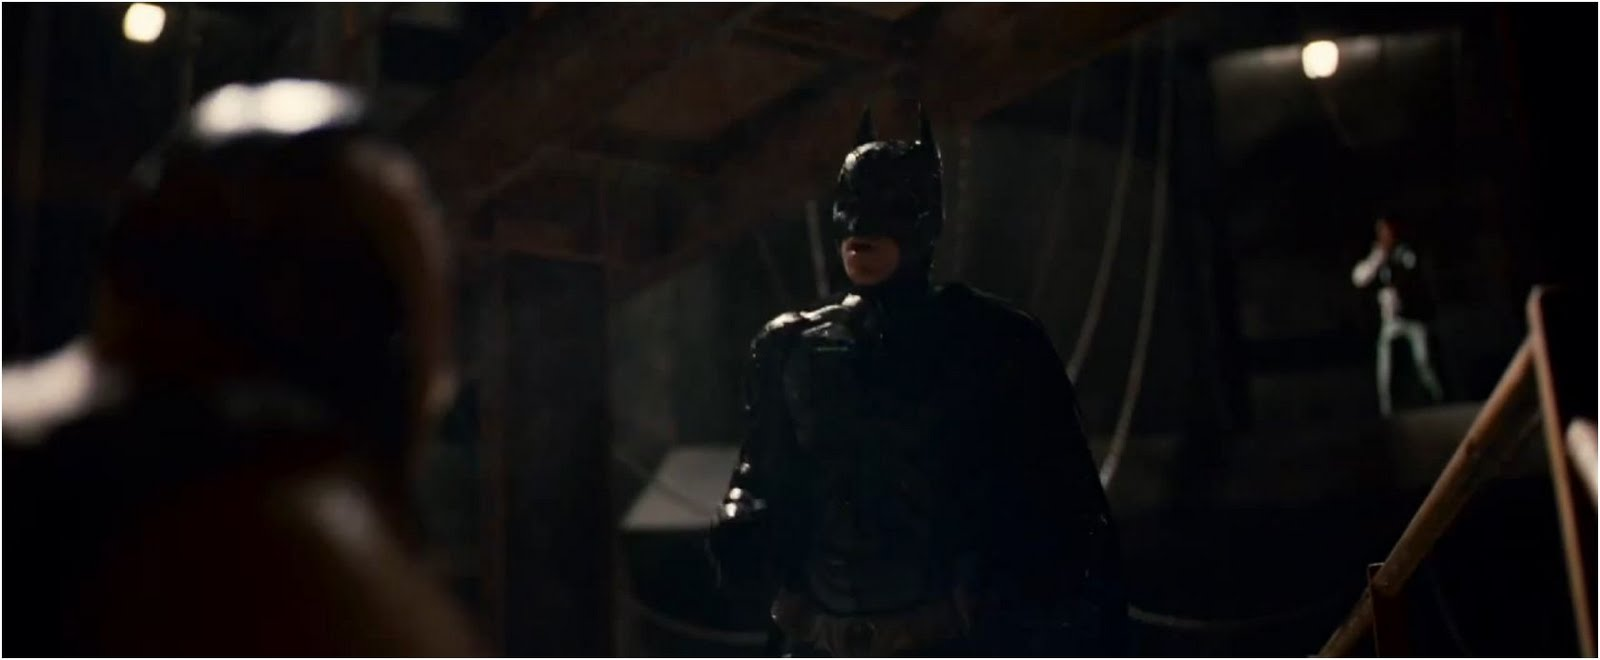 The Dark Knight Rises | Where to Stream and Watch | Decider